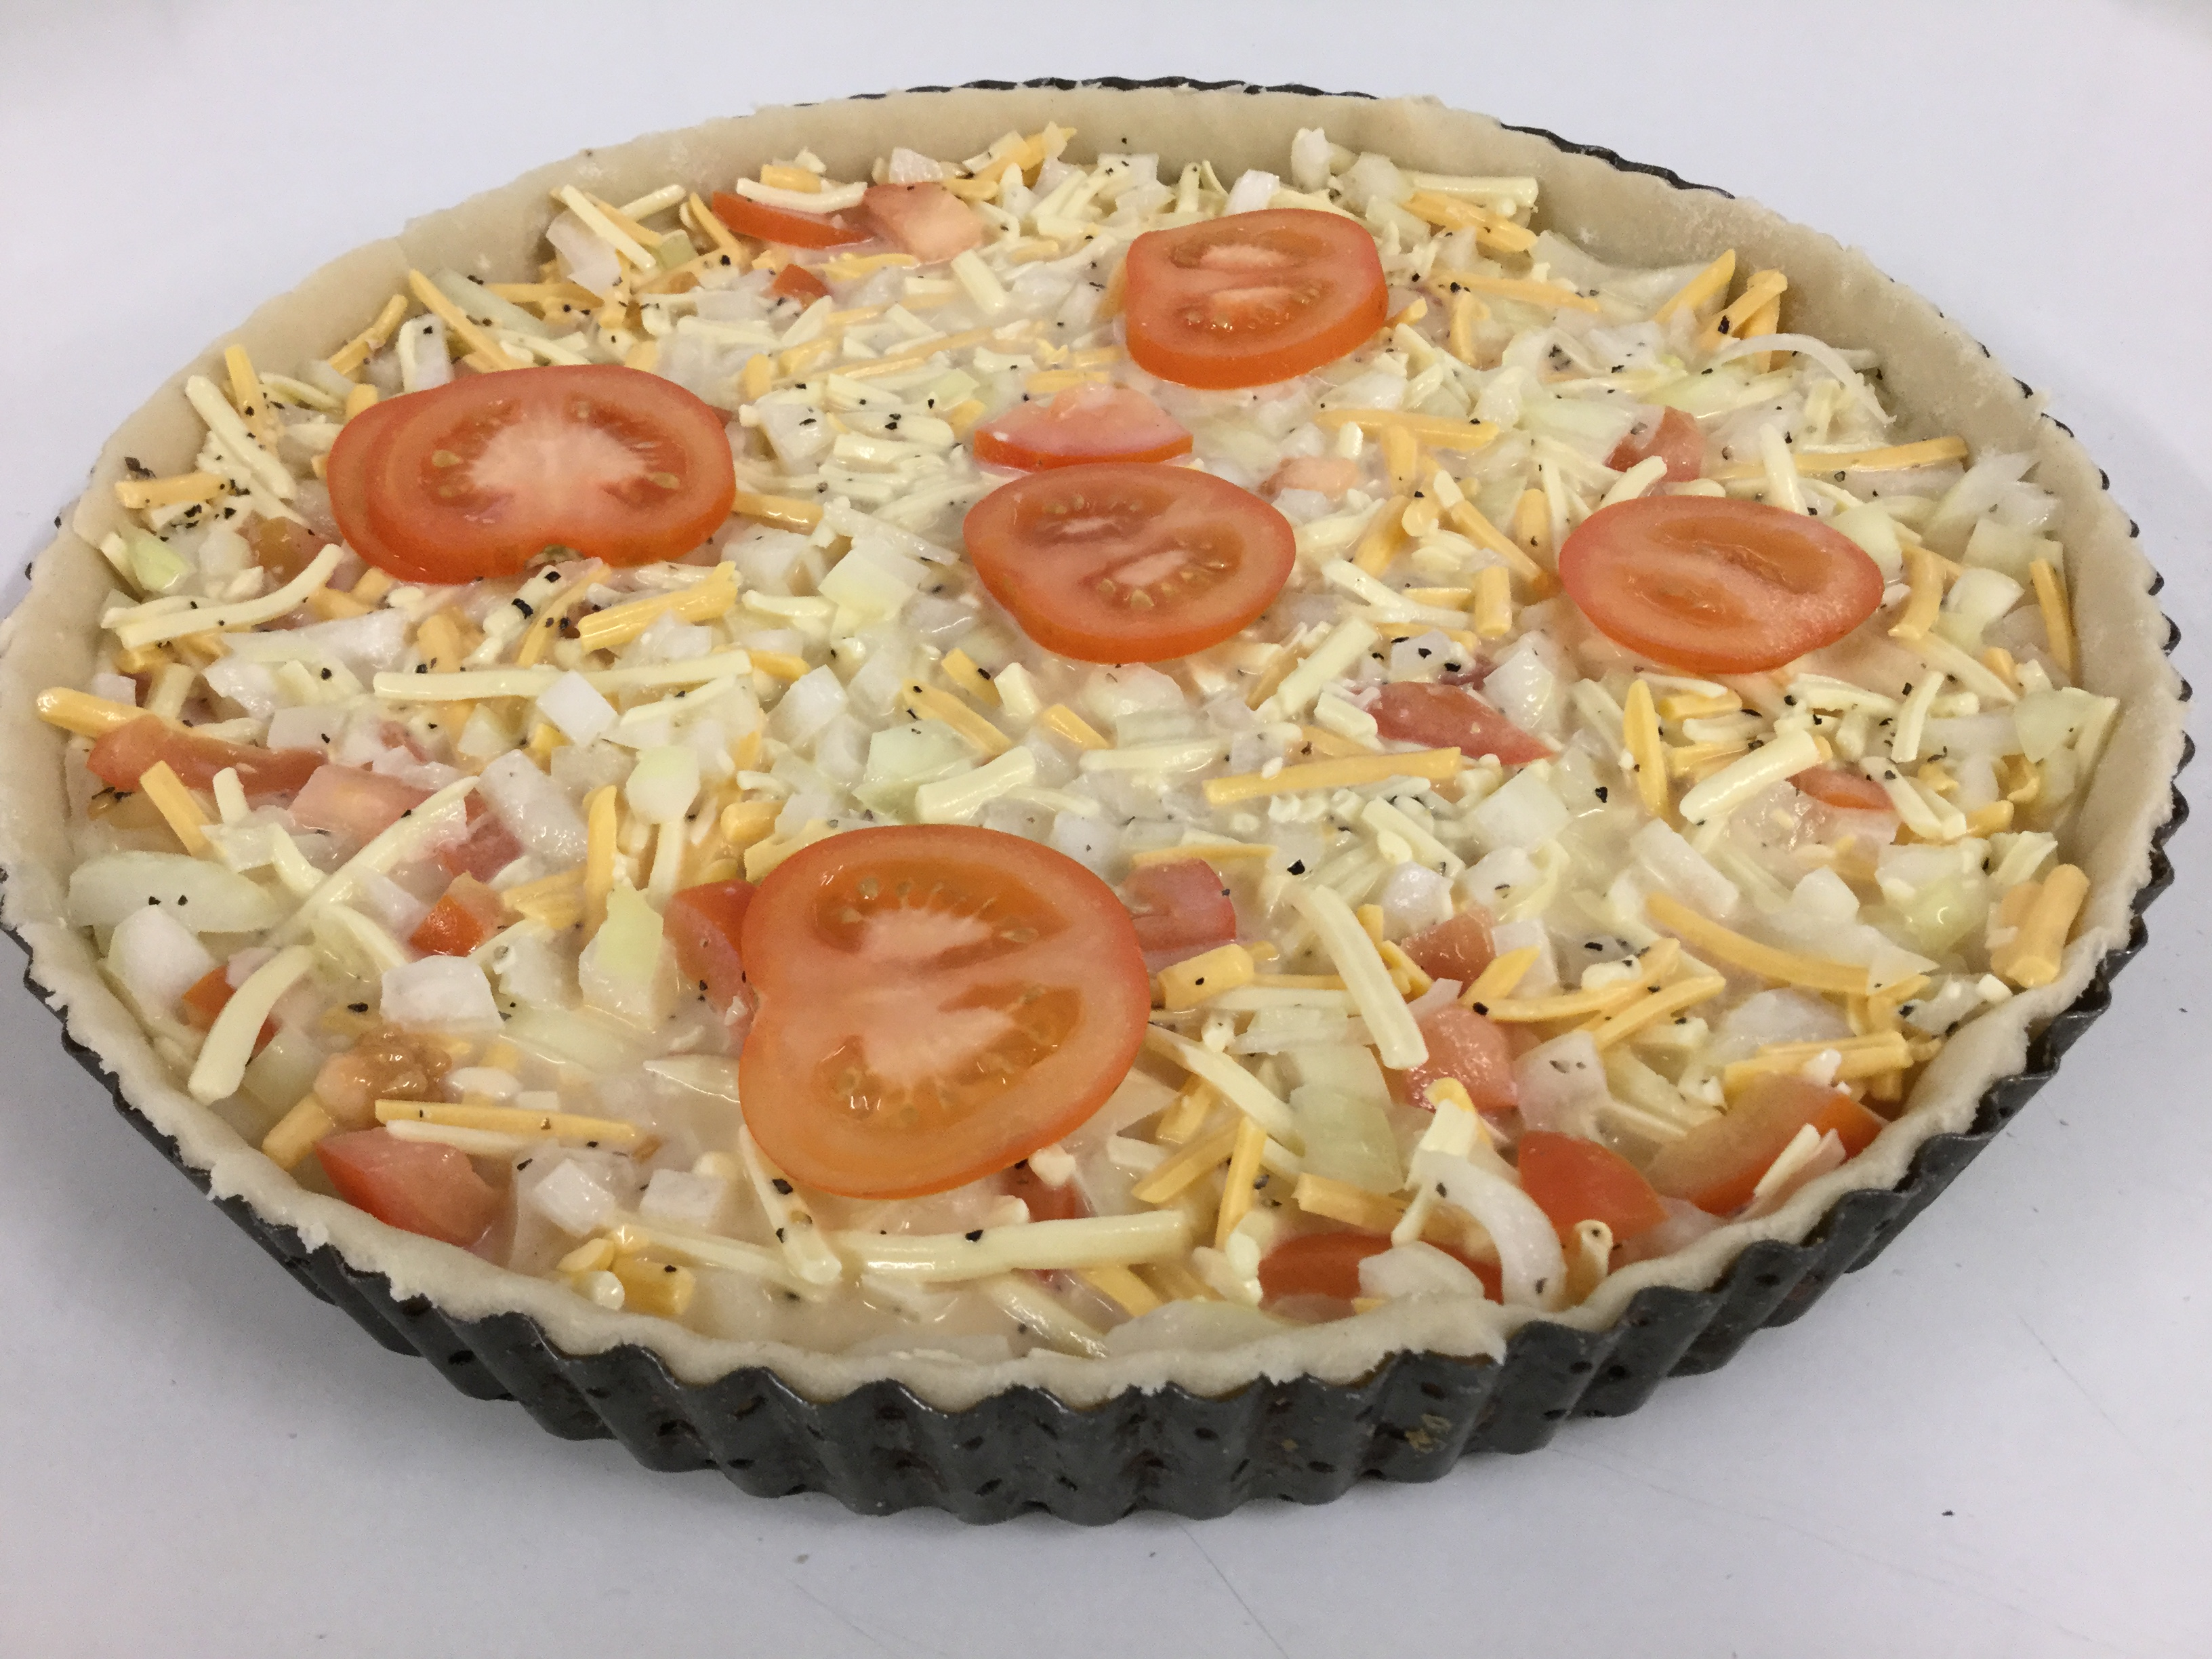 Homemade Cheese and Tomato Quiche